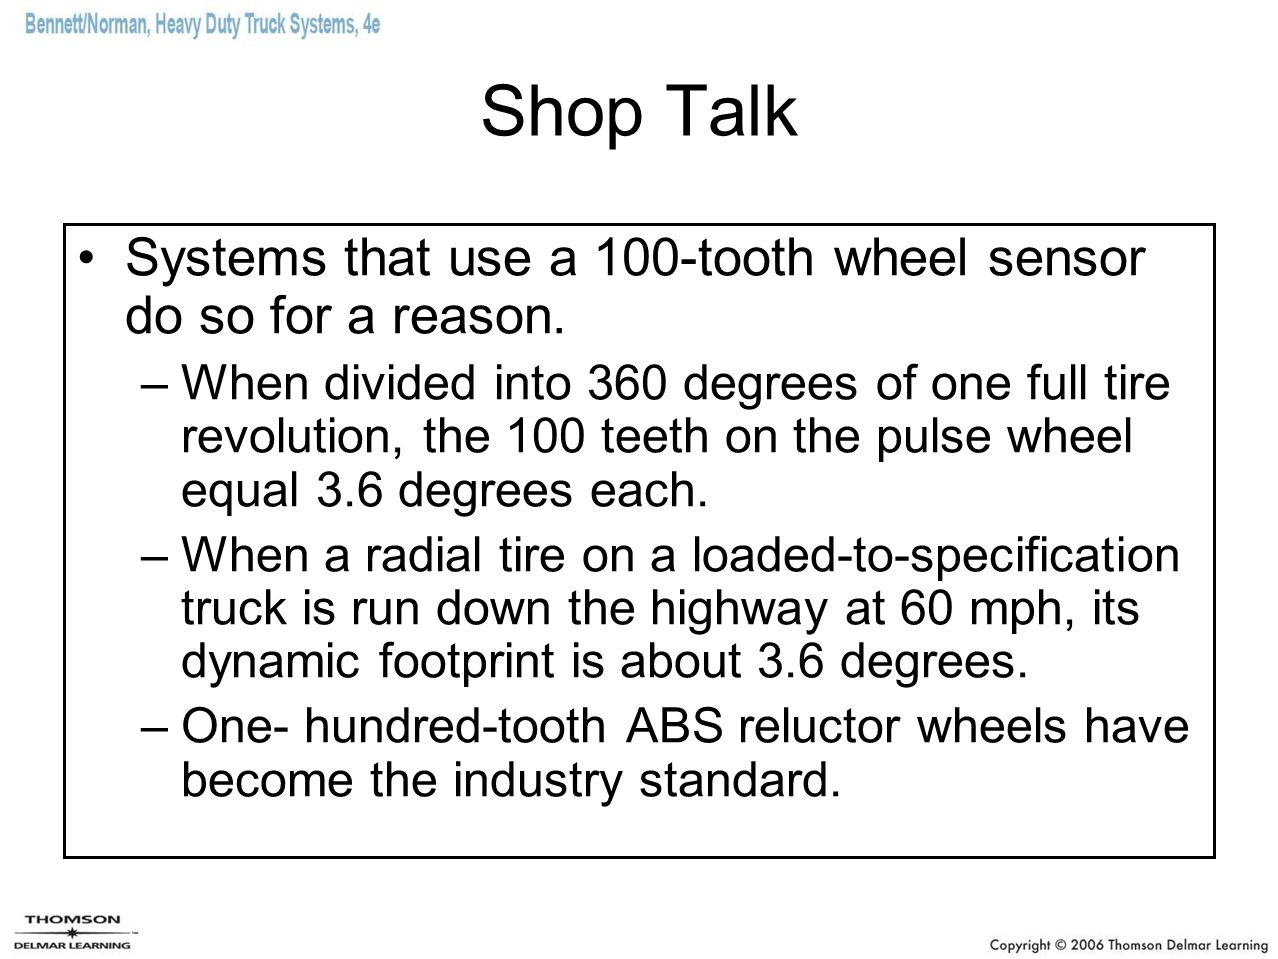 Shop Talk Systems that use a 100-tooth wheel sensor do so for a reason.